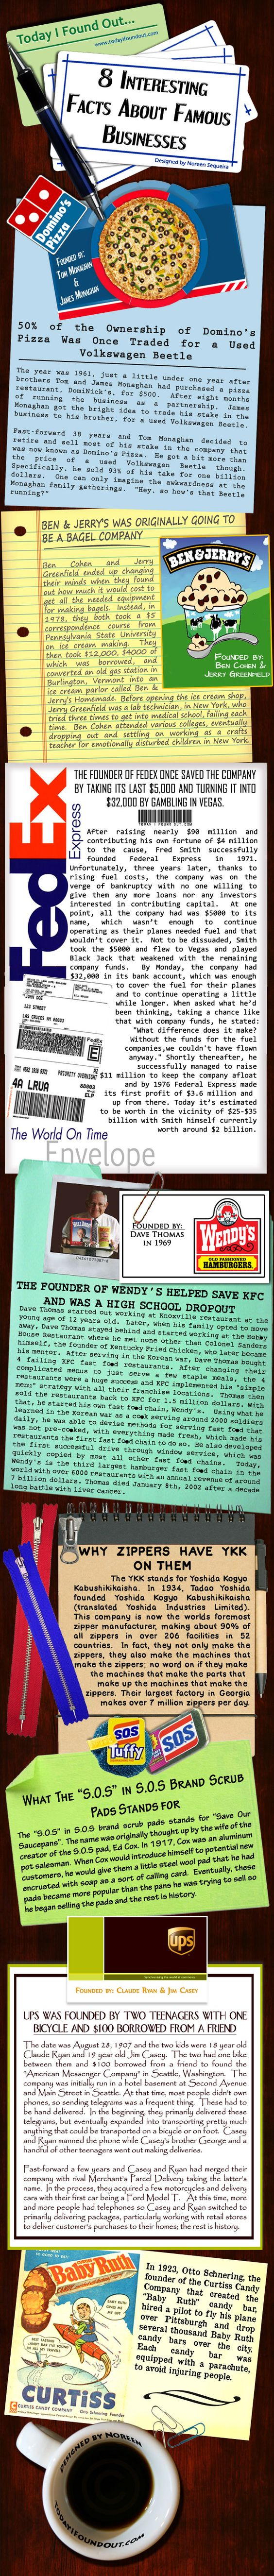 8 Interesting Facts About Famous Businesses